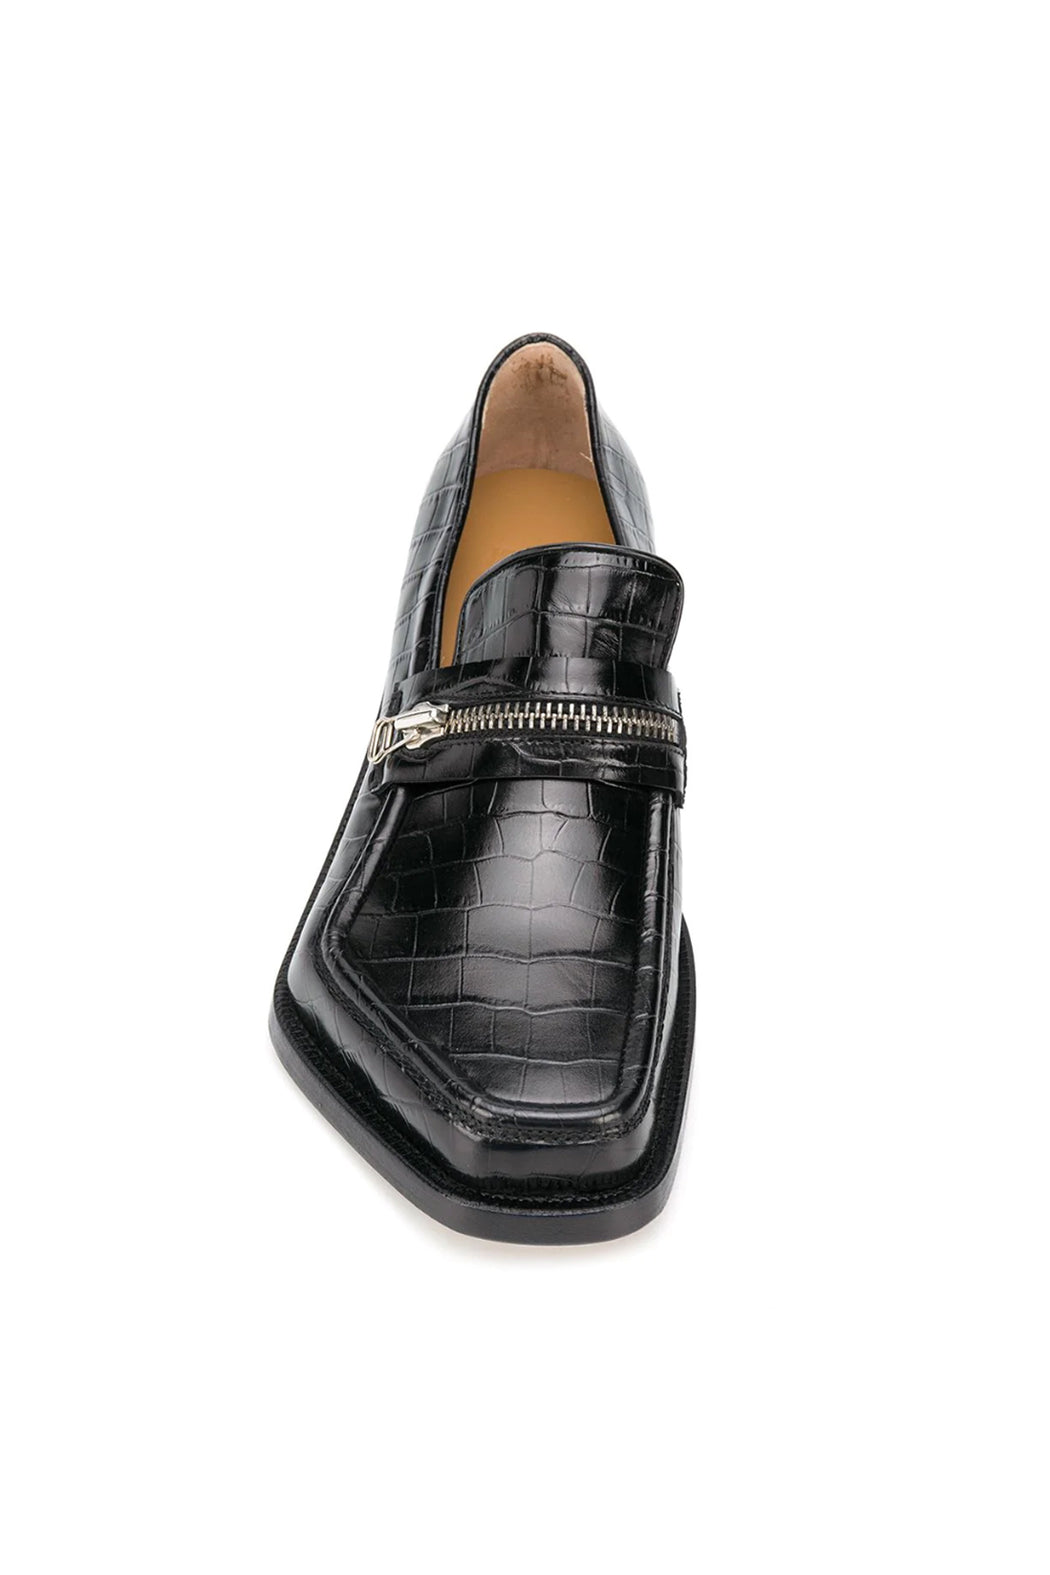 Monster Loafer Zipped - Black/Snakeskin